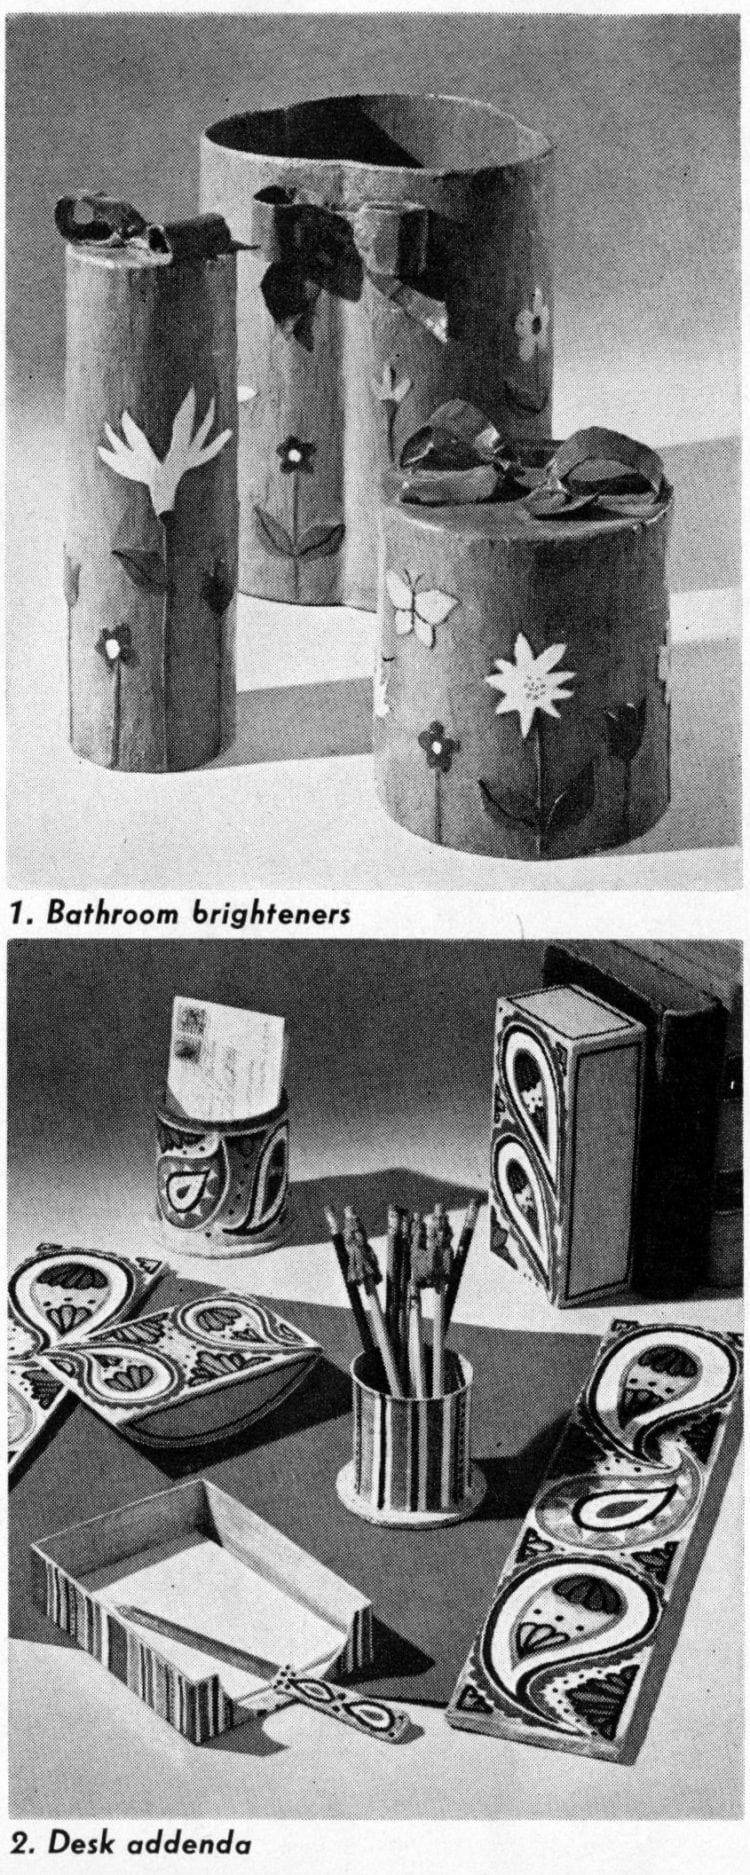 papier-mache crafts - Bathroom brighteners